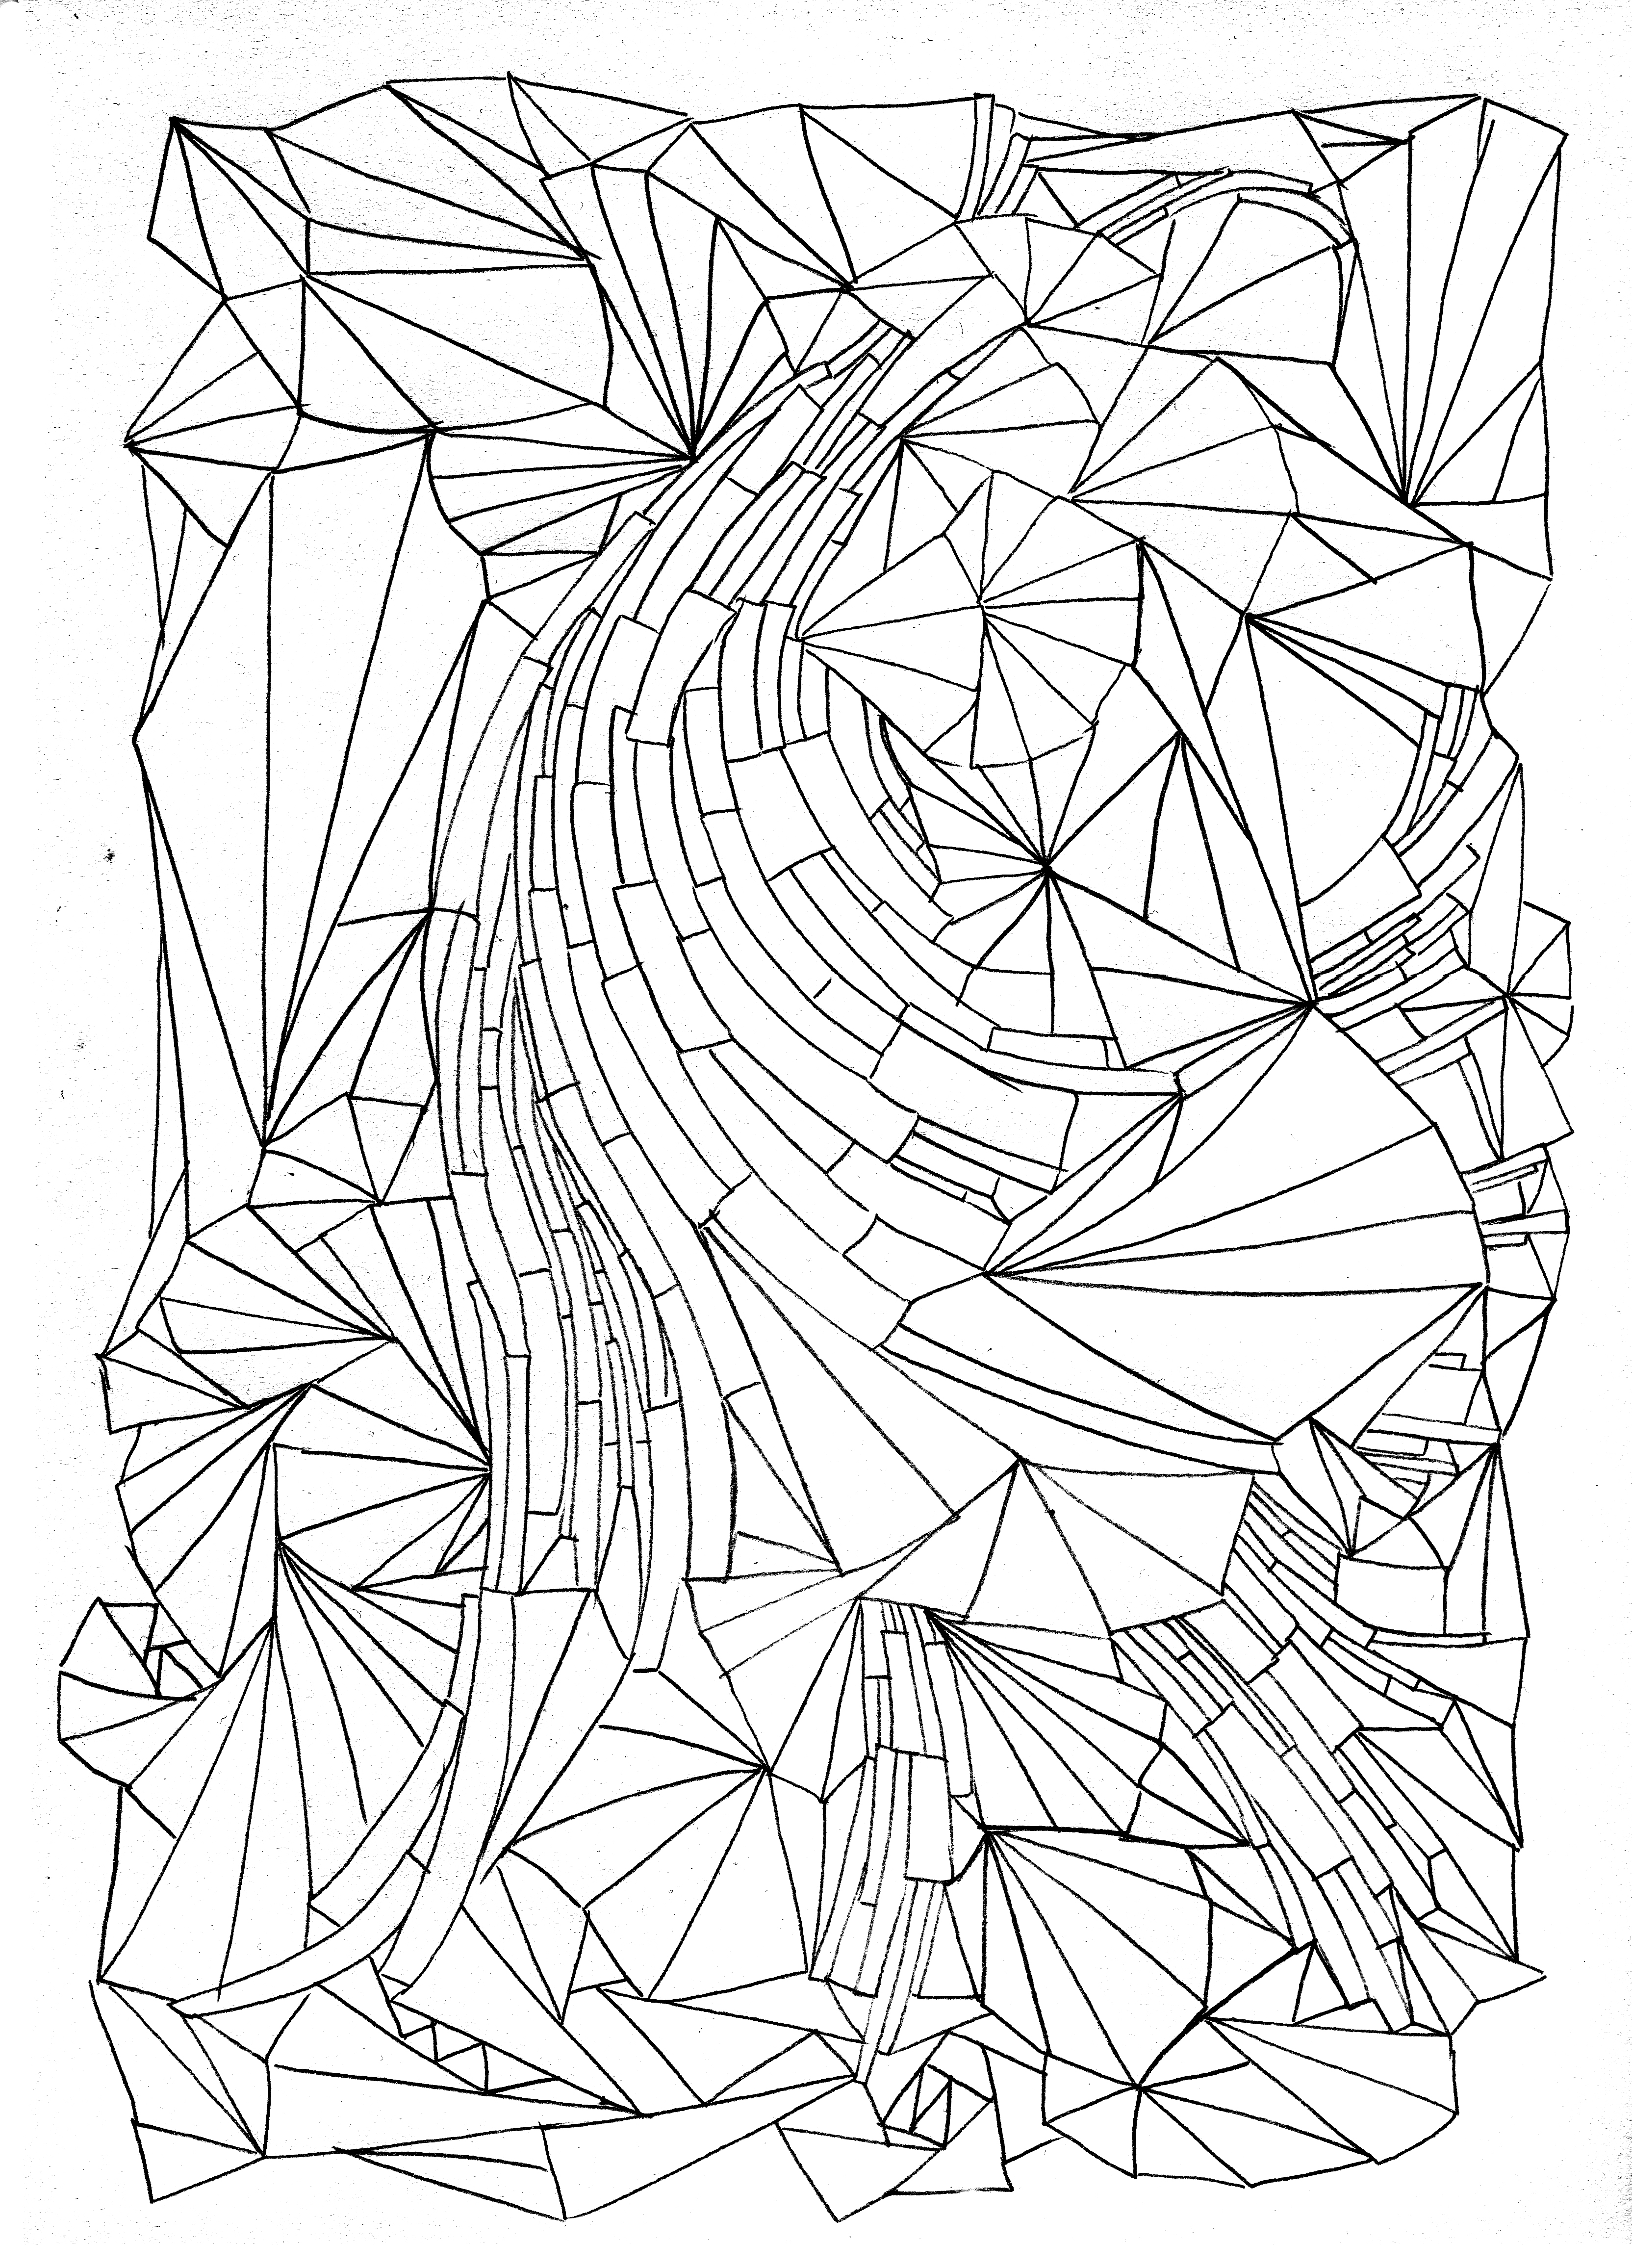 coloring pattern colouring designs thelinoprinter pattern coloring